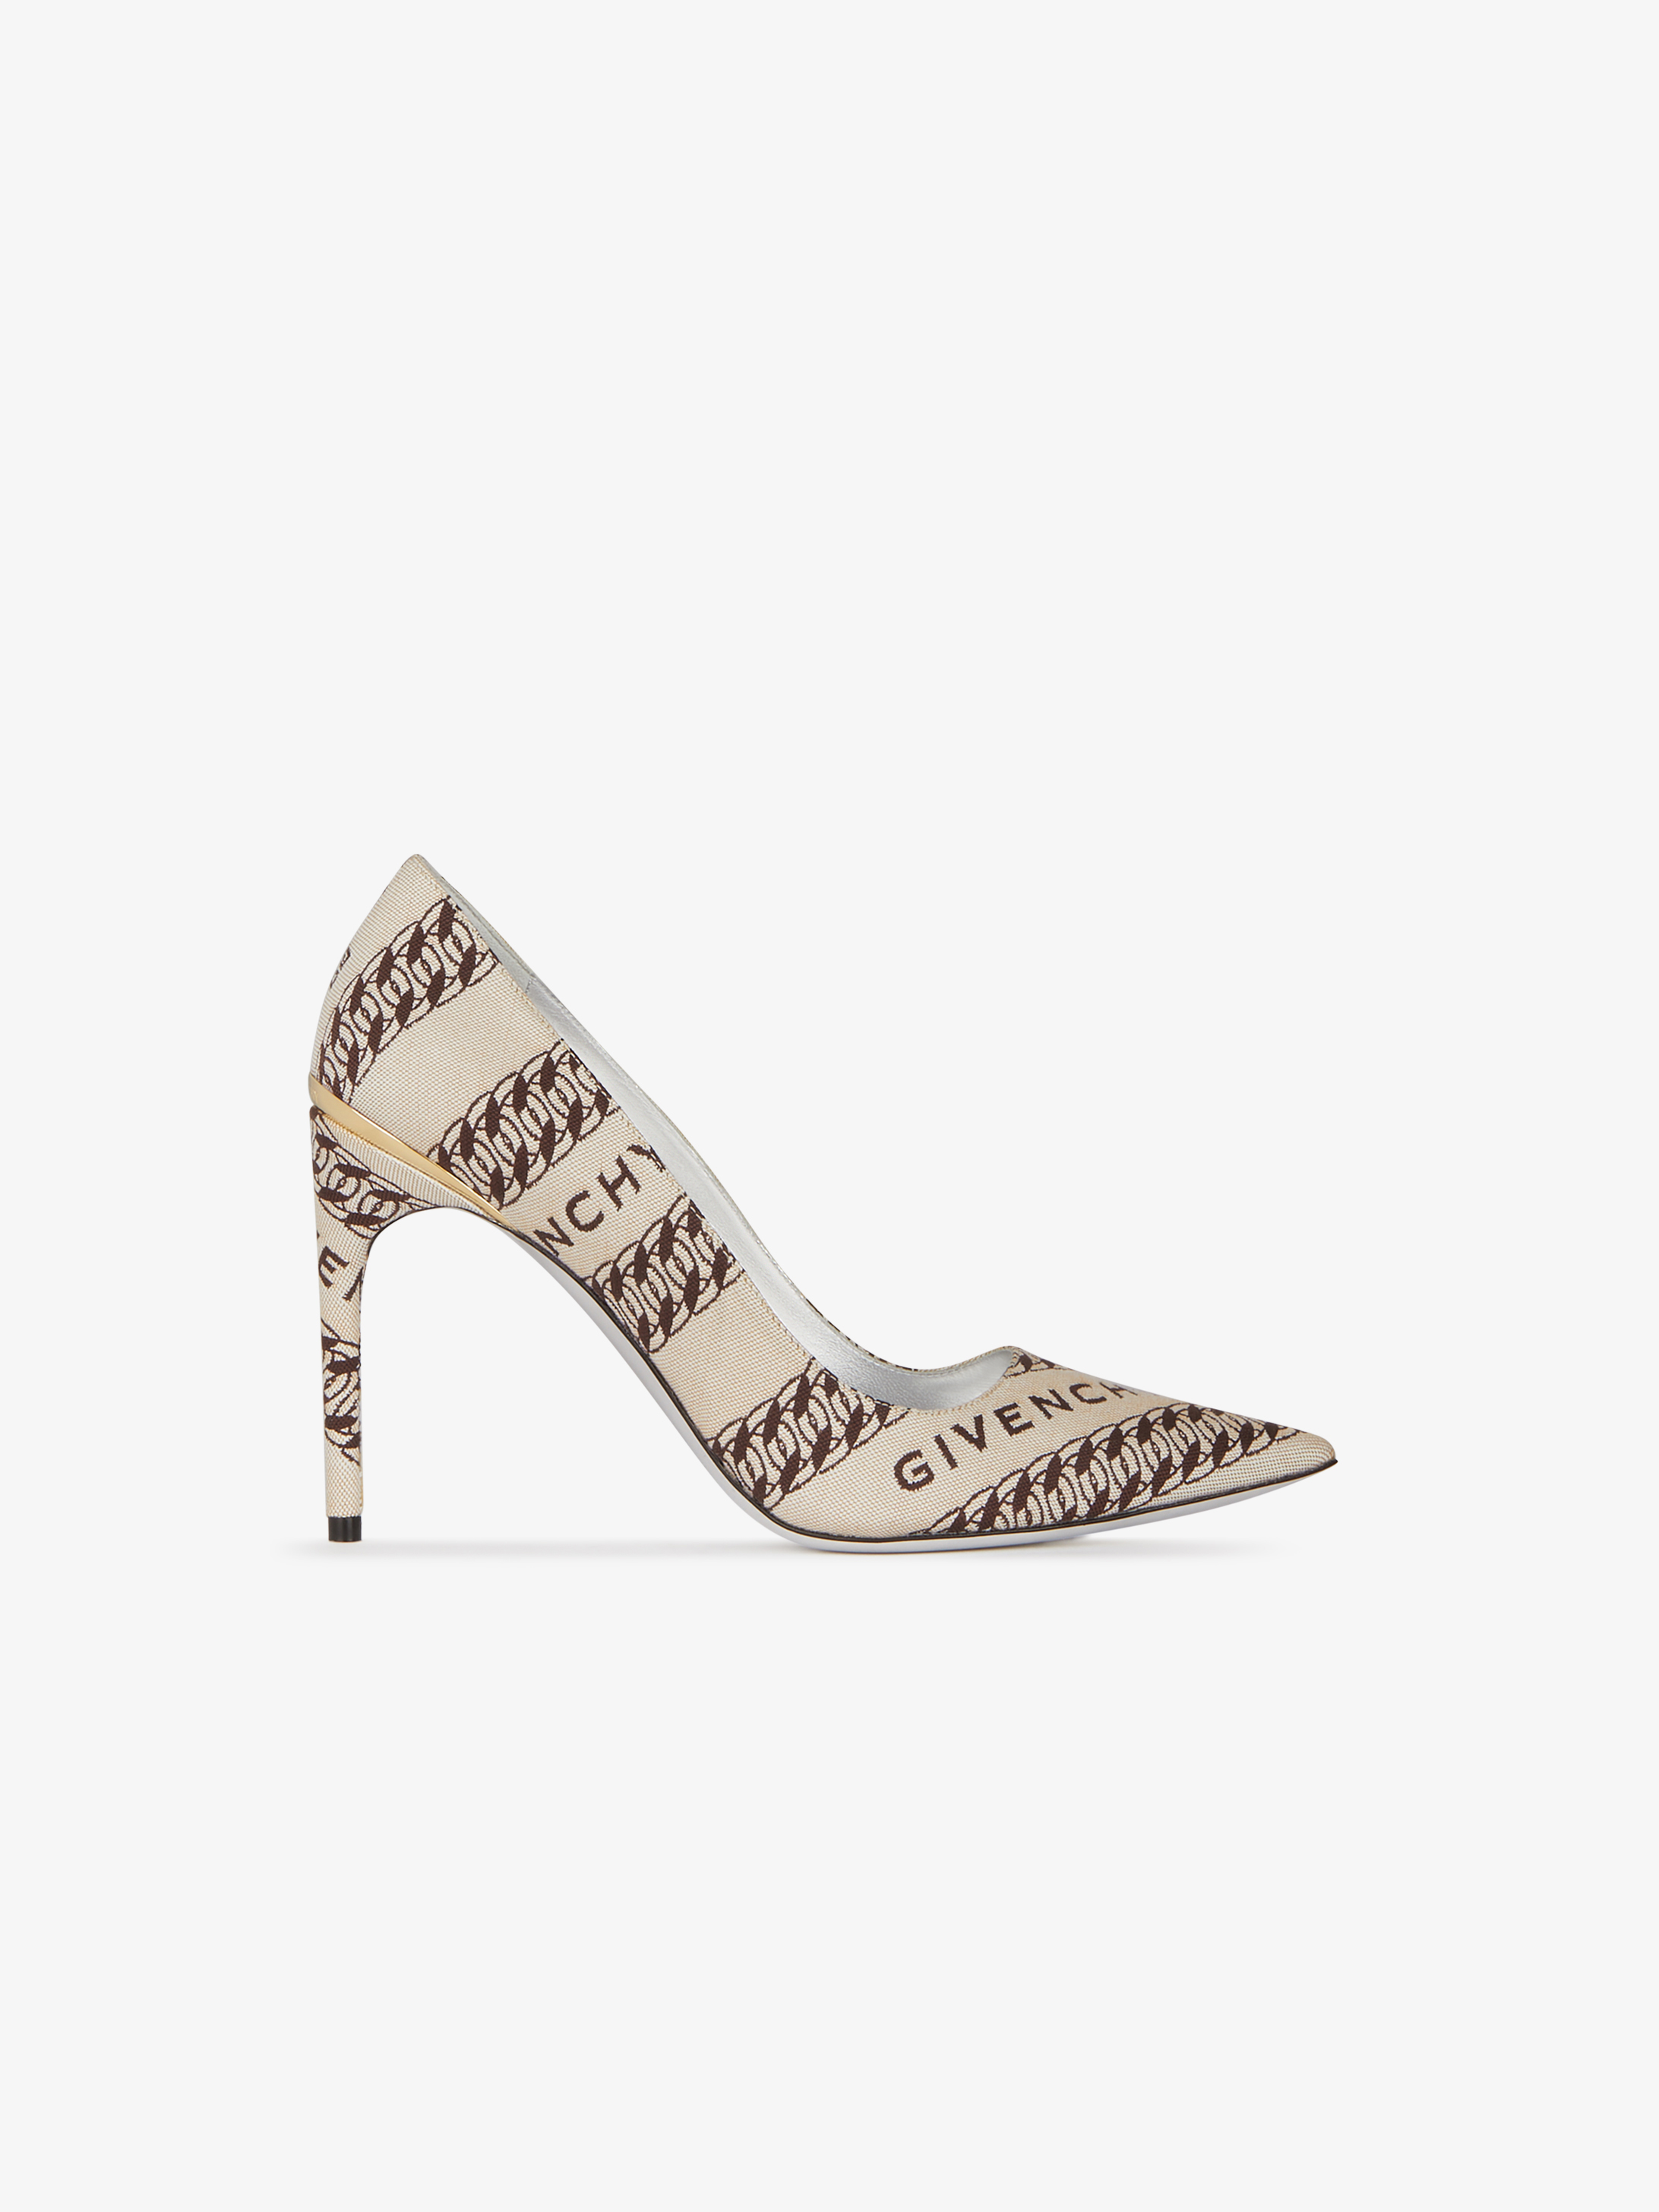 GIVENCHY Chain M-pumps in canvas